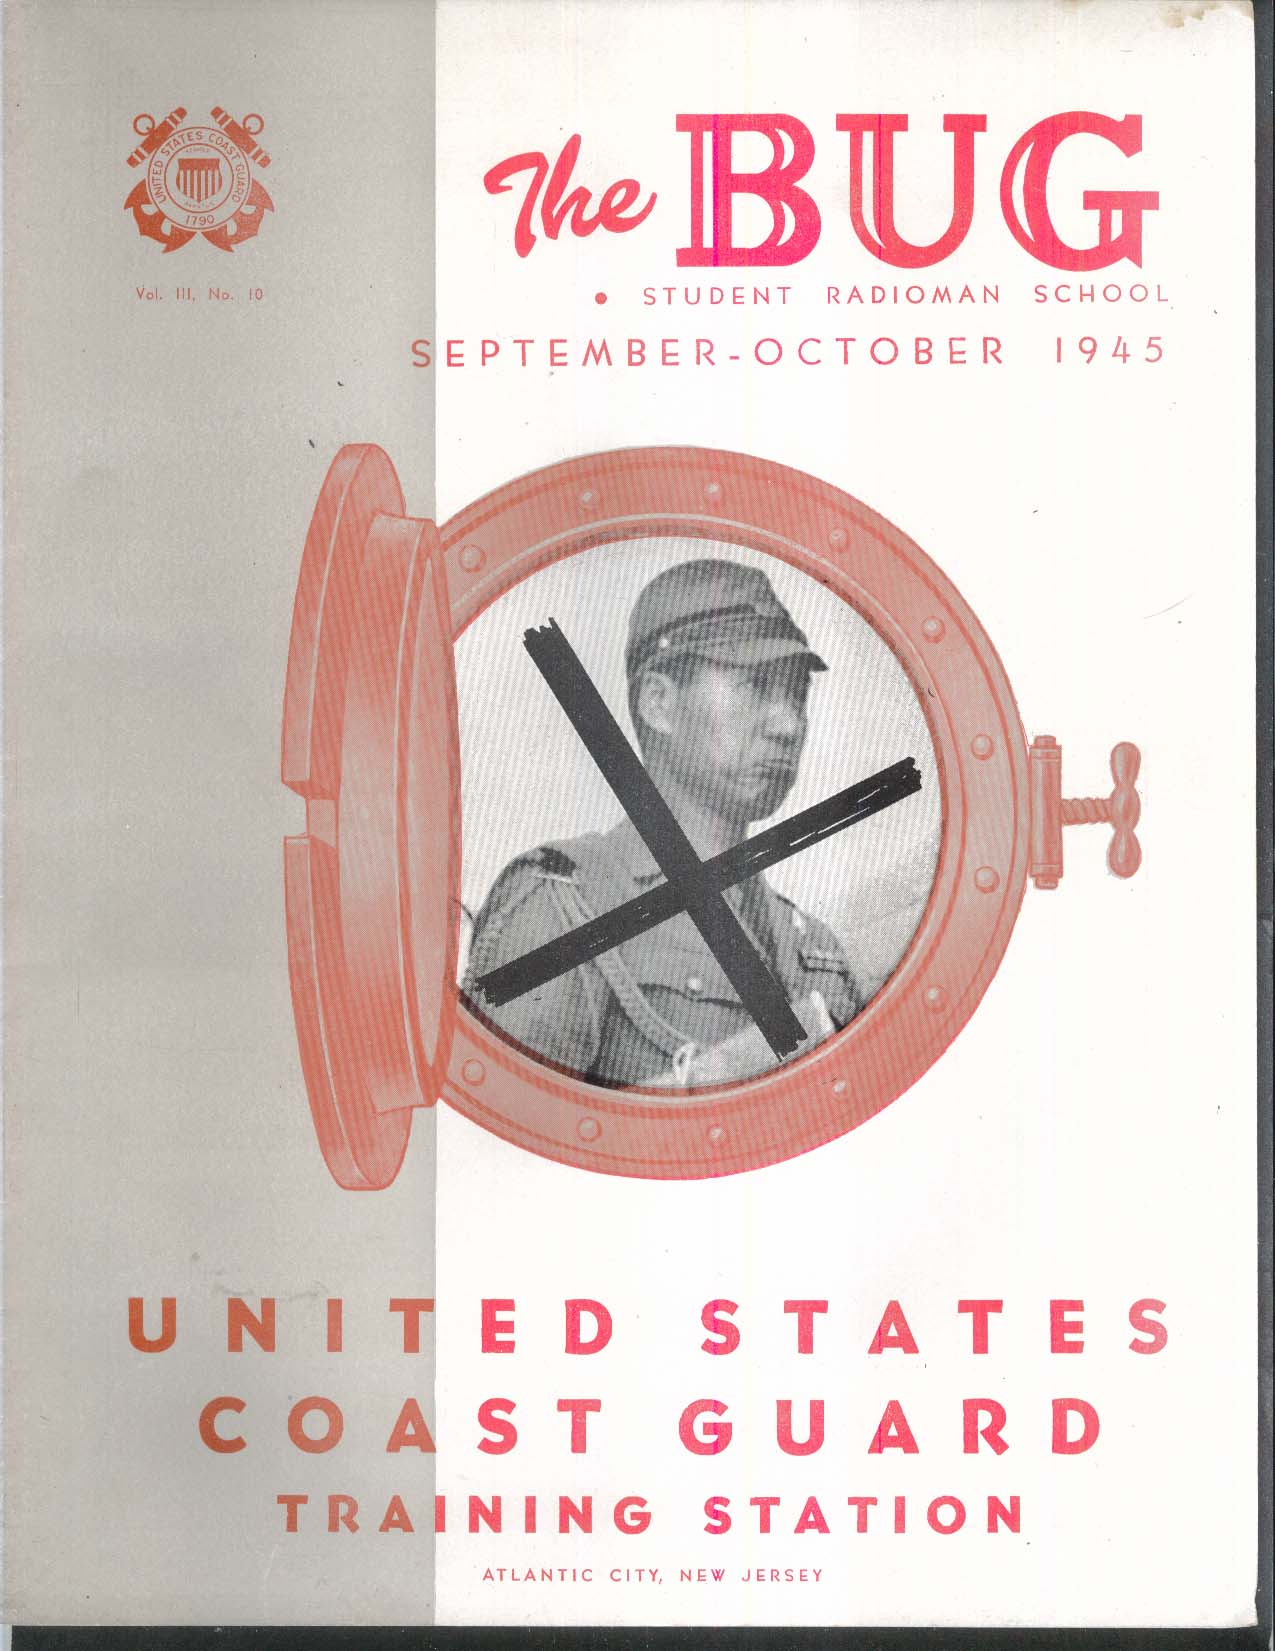 THE BUG United States Coast Guard Training Station Atlantic City NJ 9-10 1945